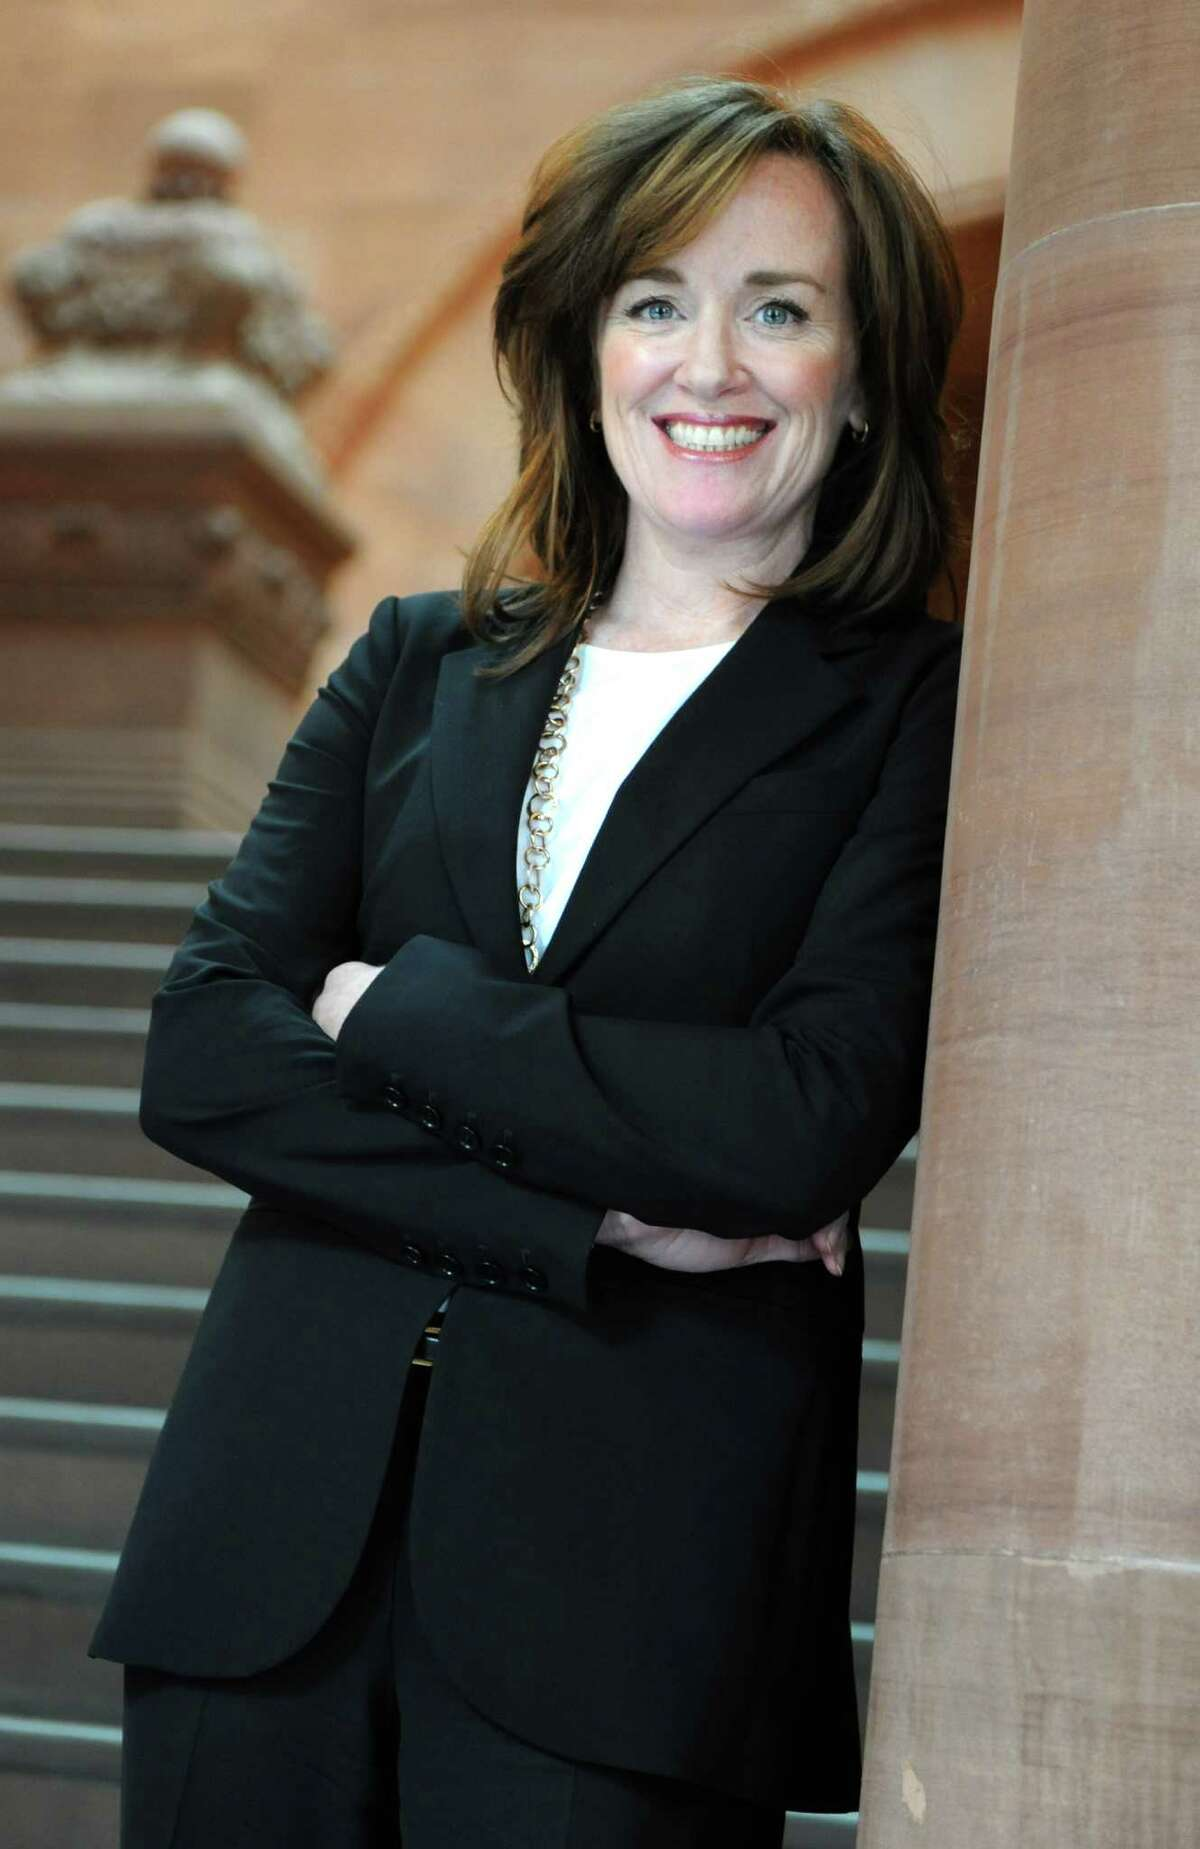 Nassau County District Attorney Kathleen Rice stands on the stairs inside the Capitol on Wednesday March 6, 2013 in Albany, N.Y. Rice is leading efforts to change the way New York schools report incidents of violence and bullying. Schools self-report their violence incidents and few are reporting any incidents at all. (Lori Van Buren / Times Union)